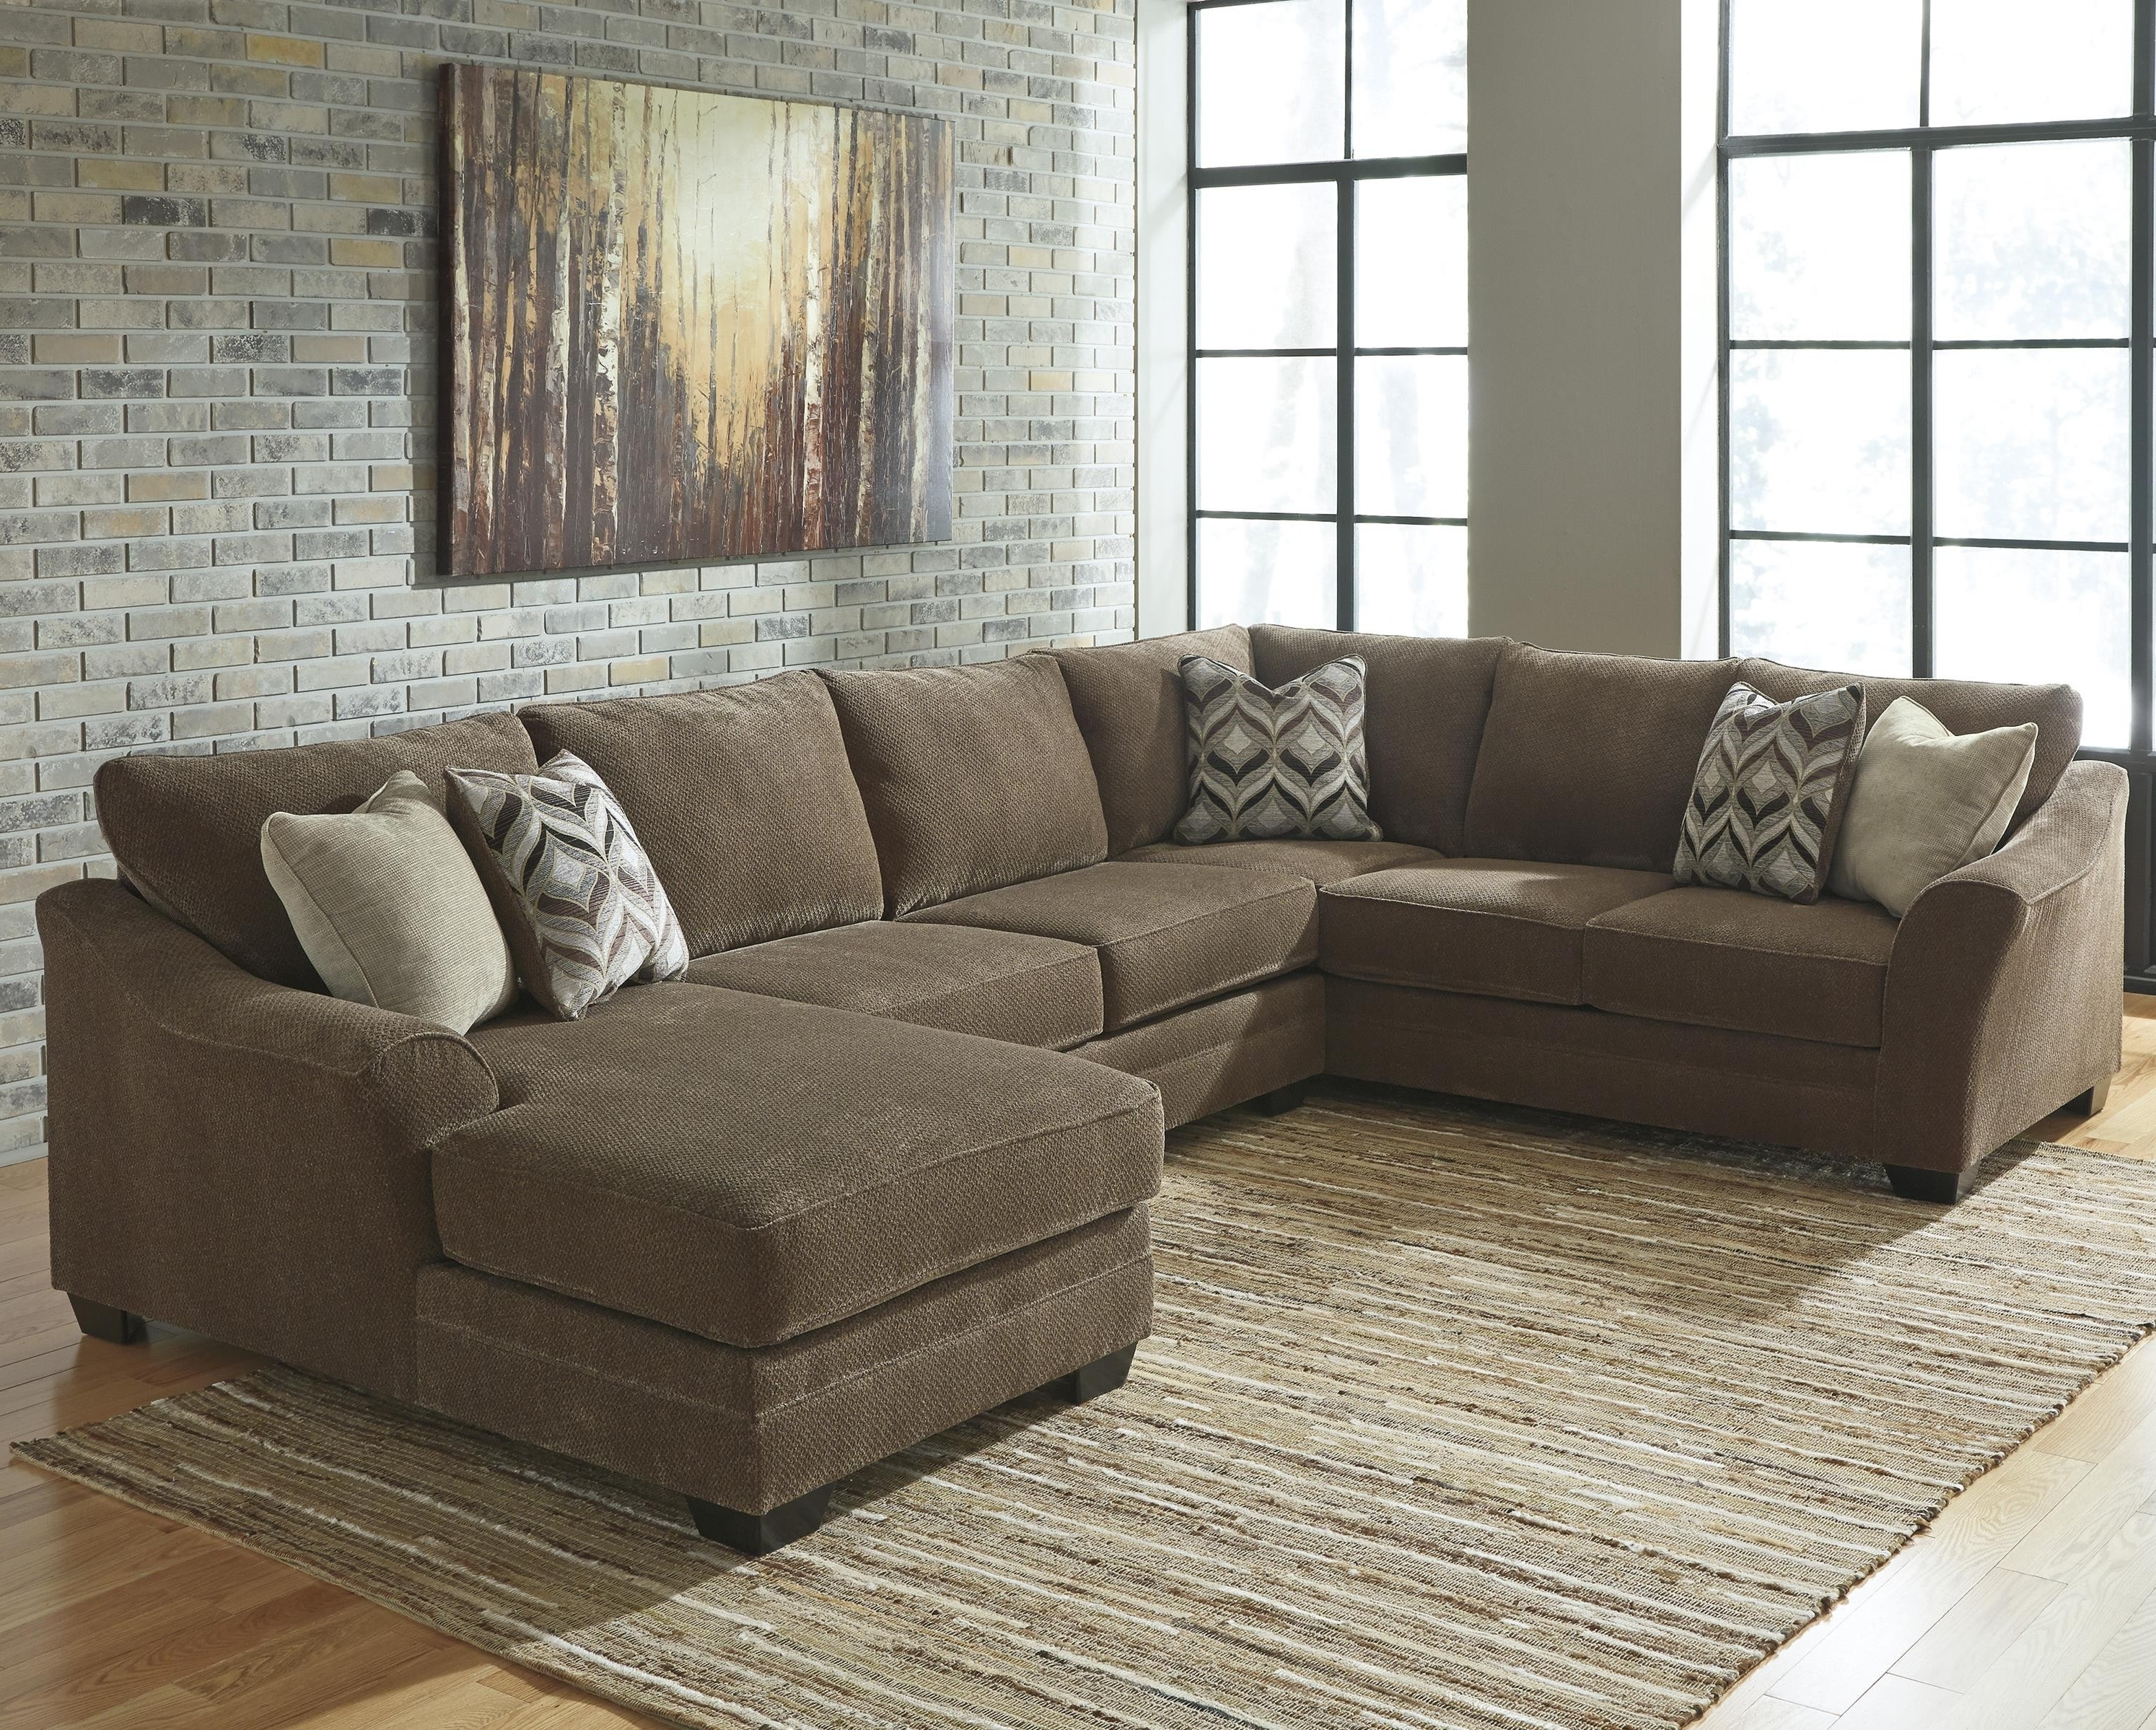 Vaughan Sectional Sofas Regarding Famous Sofa Cheap Sectional Sofas Fabric Sectional Vaughn Apartment Inspirational Vaughn Sectional Sofa 5pc Dimensions Of Vaughn Sectional Sofa 5pc Dimensions (View 7 of 20)